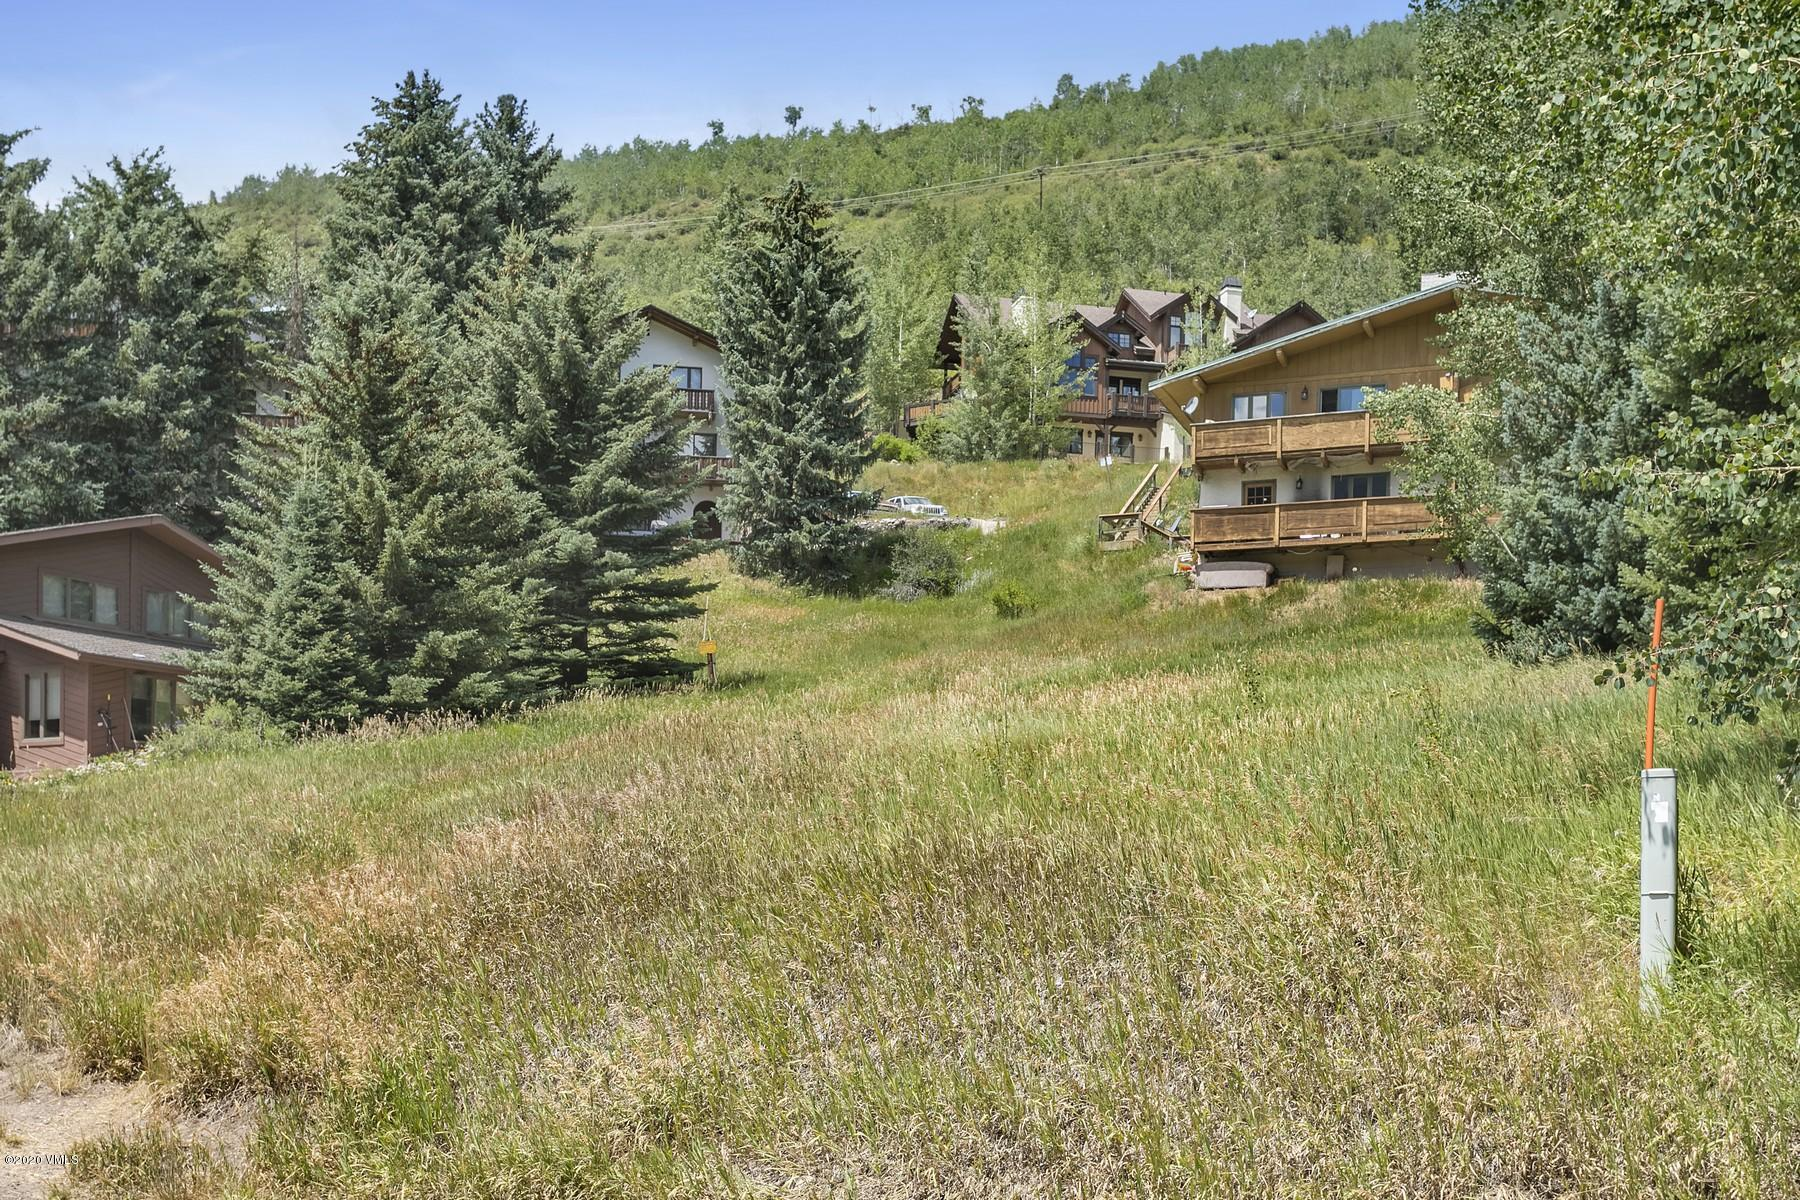 2379 Chamonix Lane, Vail, CO 81657 Property Photo